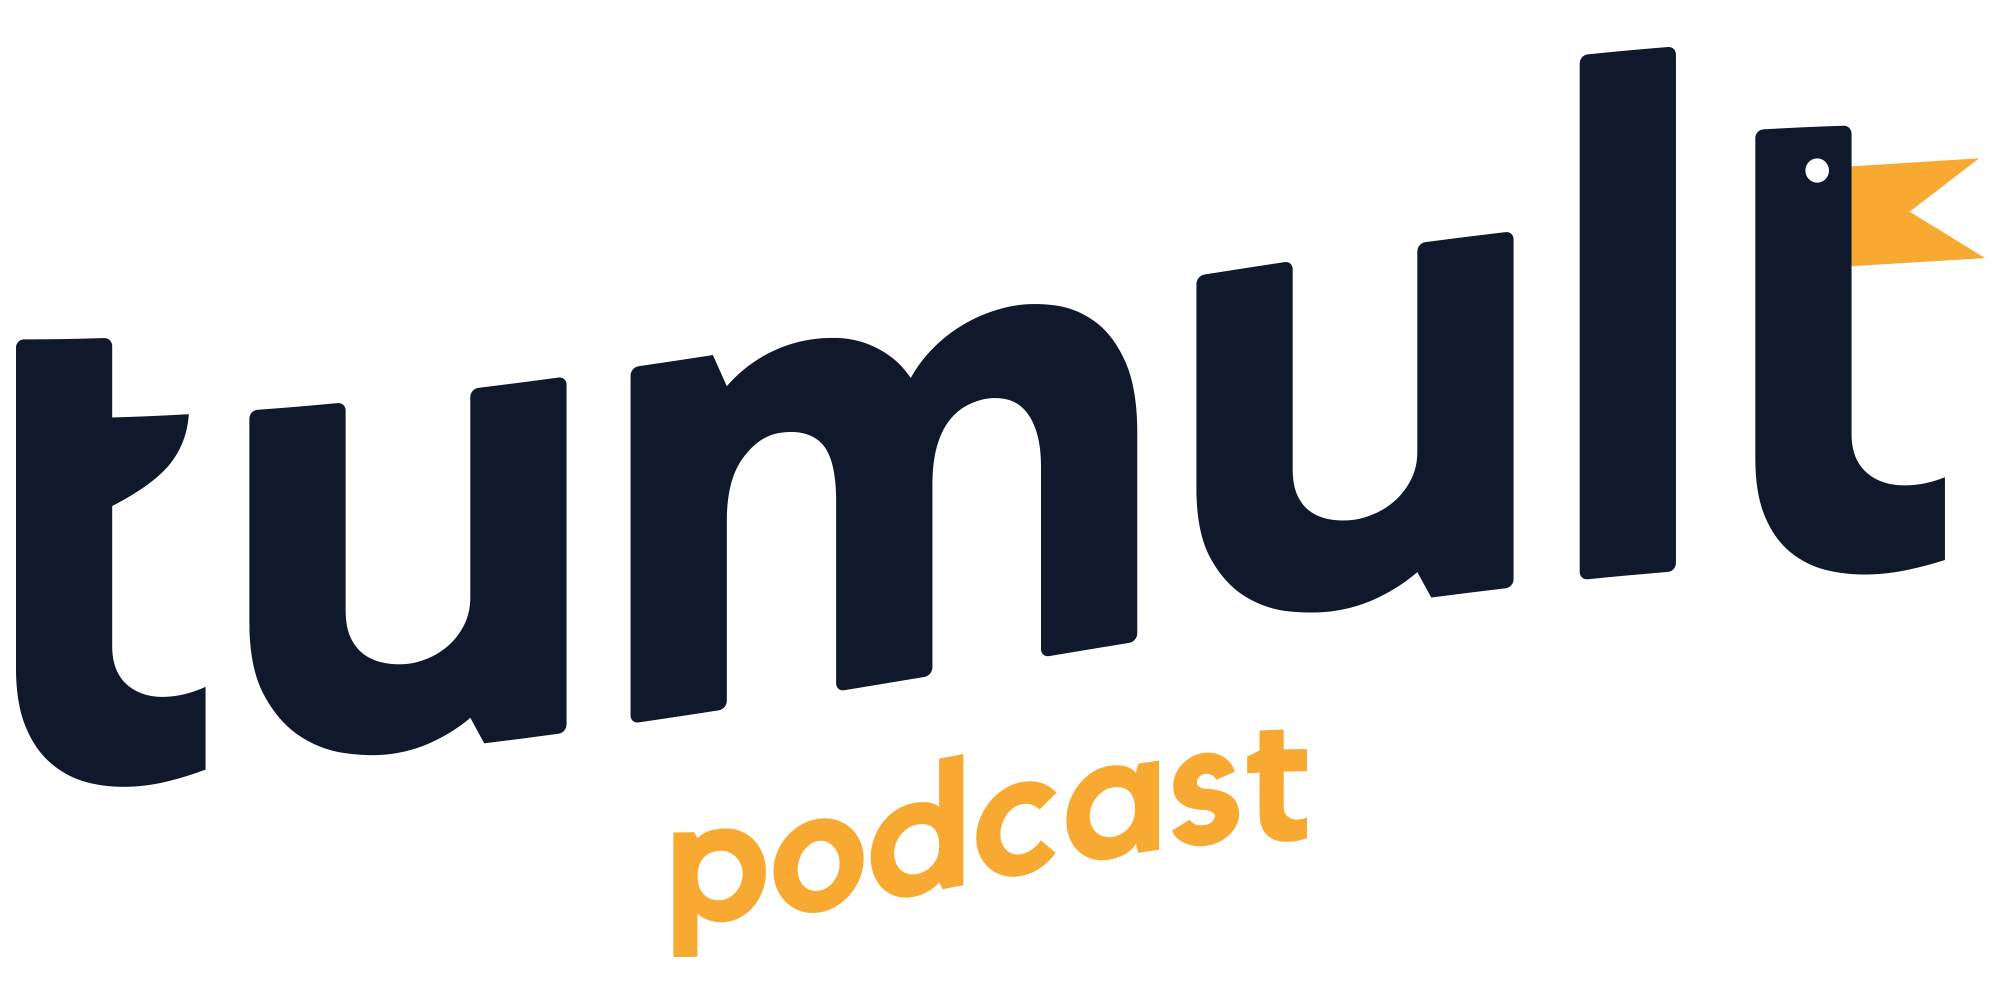 Tumult Podcast